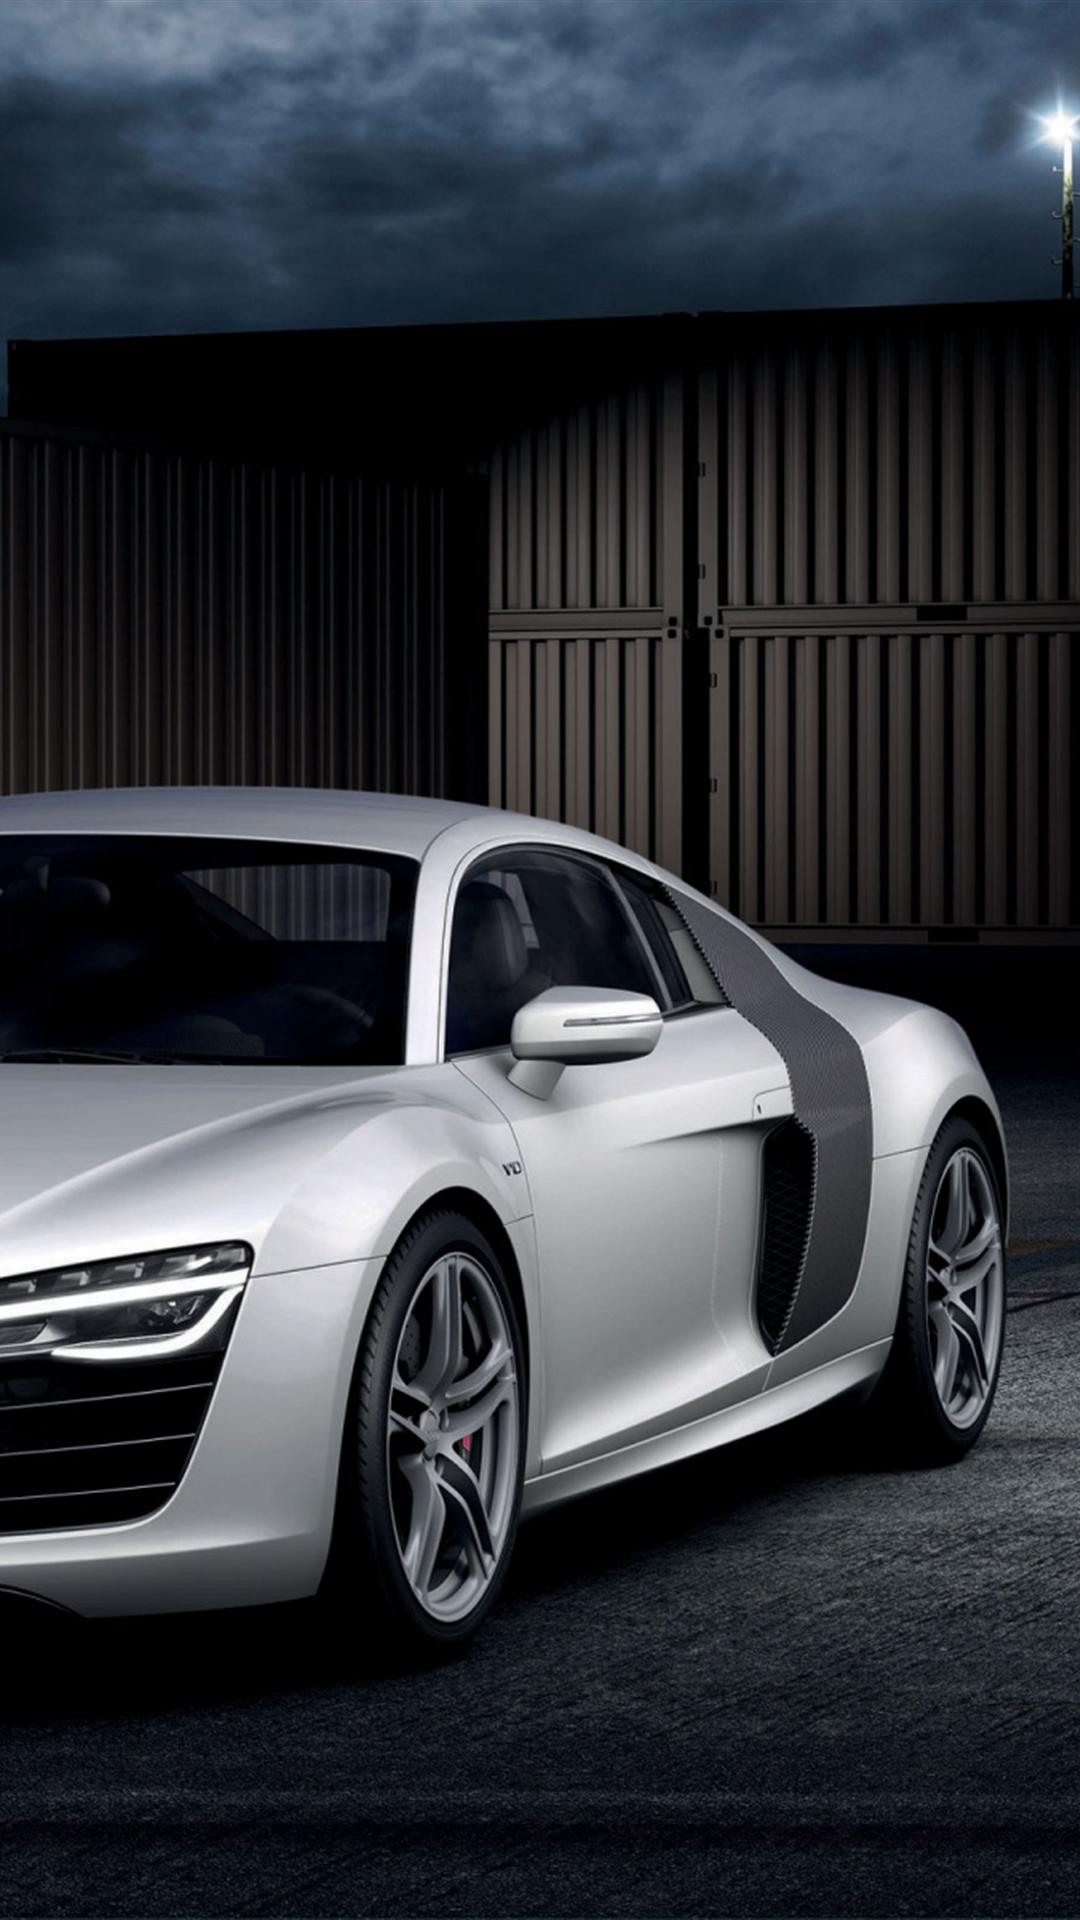 audi r8 android wallpaper - android hd wallpapers